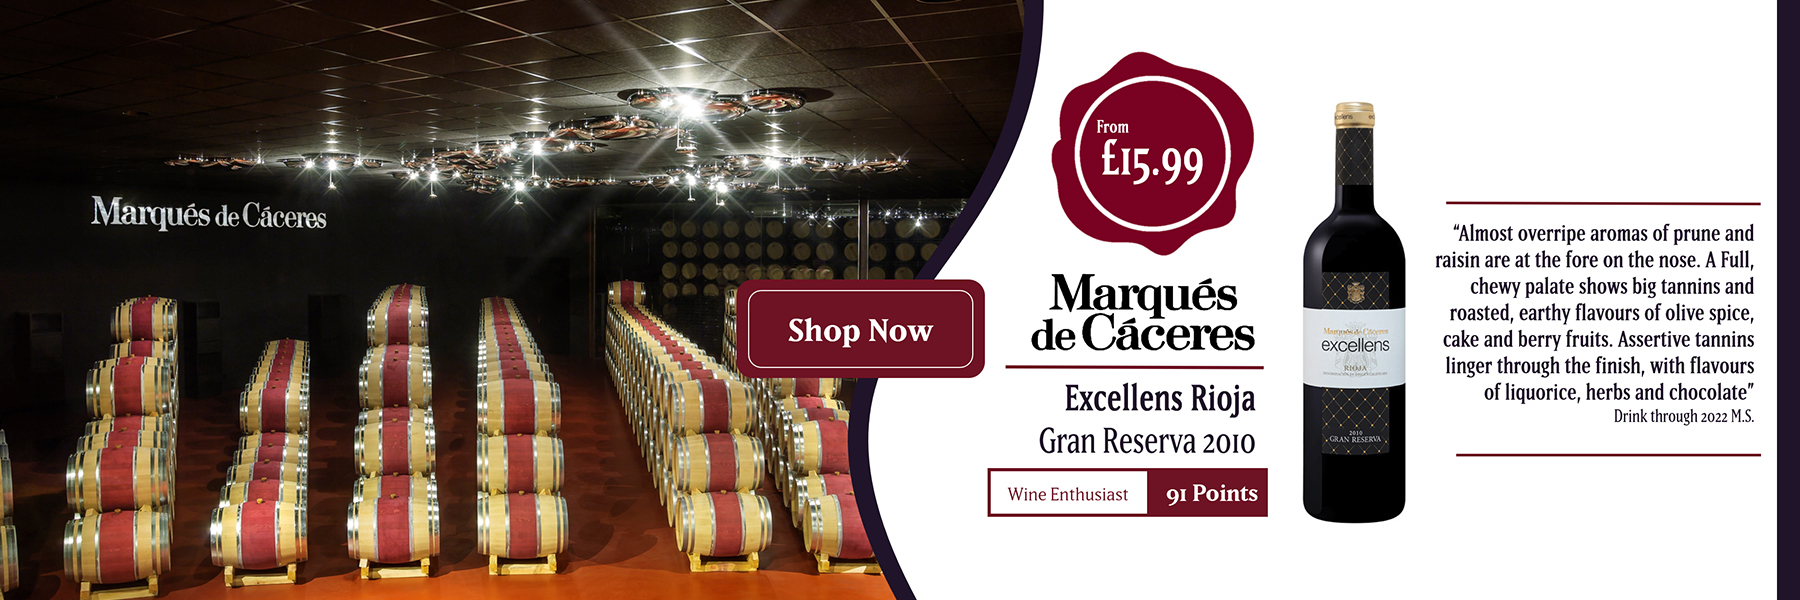 Marques de Caceres offer